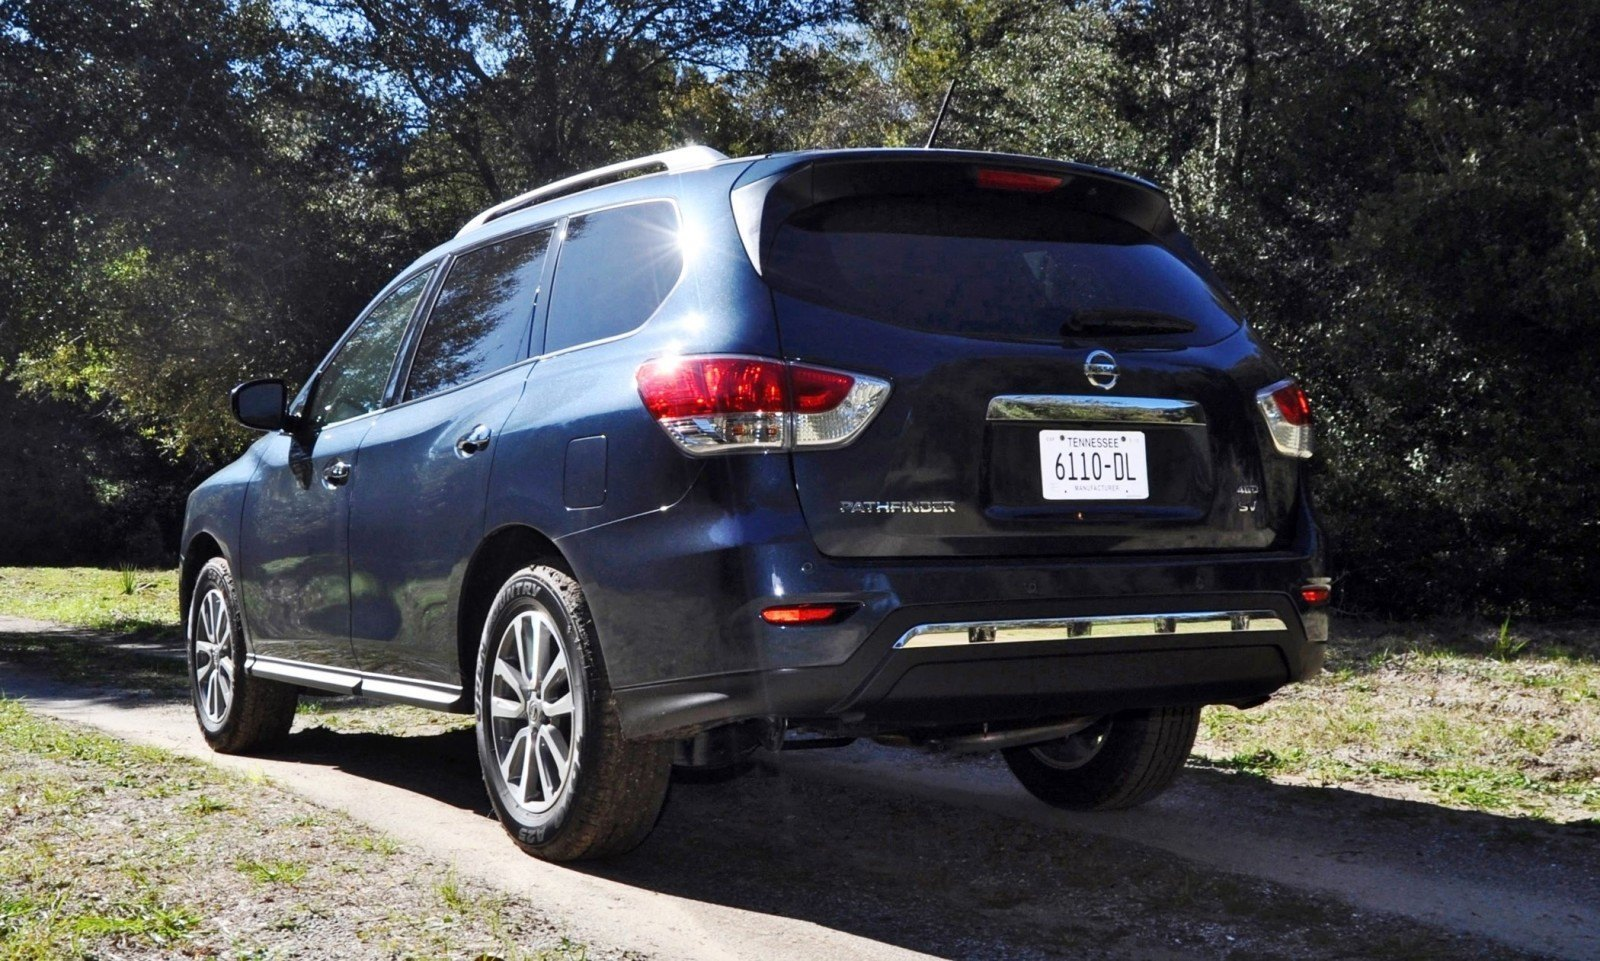 Road Test Review - 2015 Nissan Pathfinder SV 4WD 35